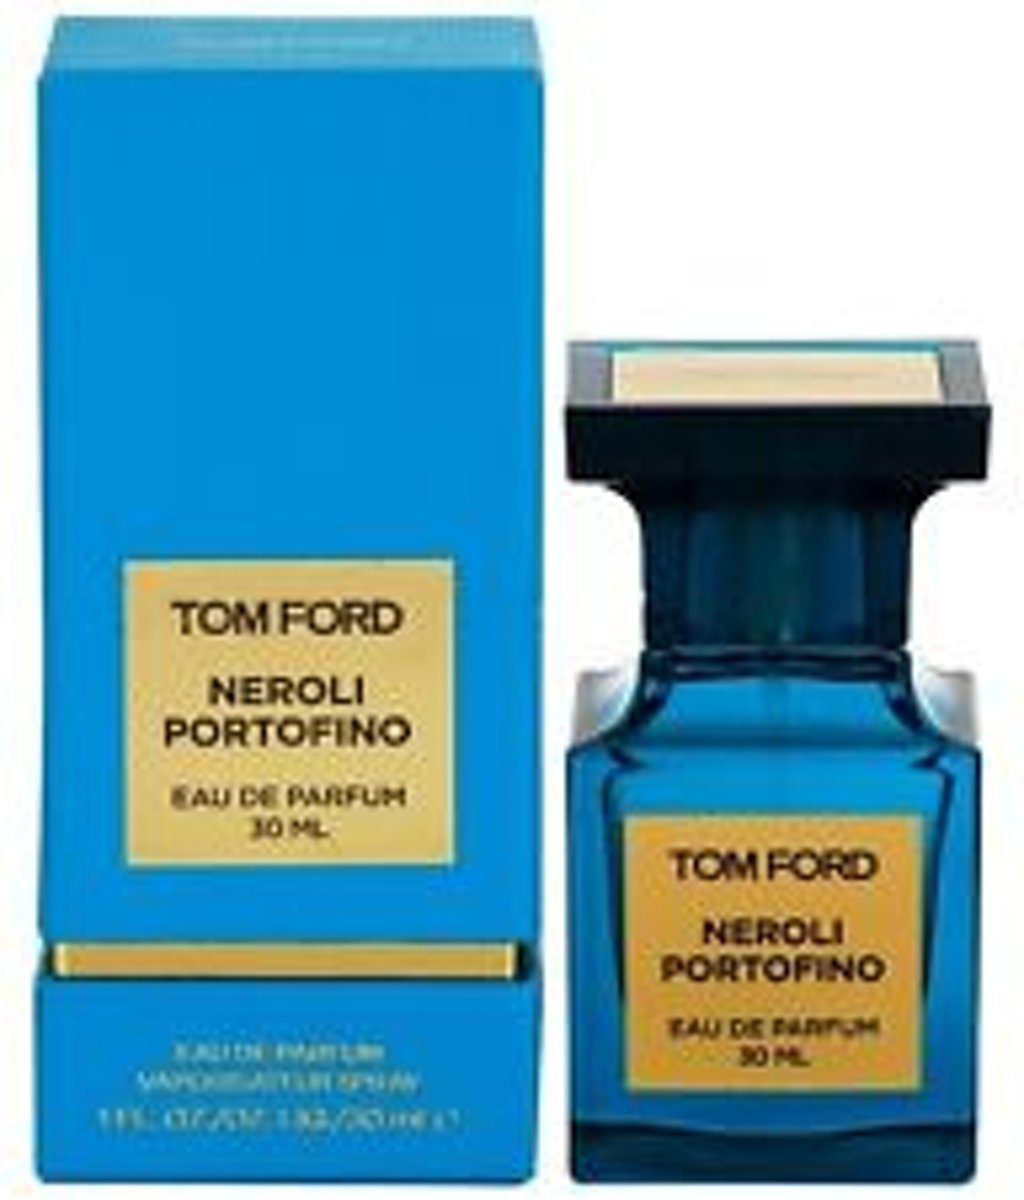 Tom Ford Private Blend Neroli Portofino Eau de Parfum 30ml Spray